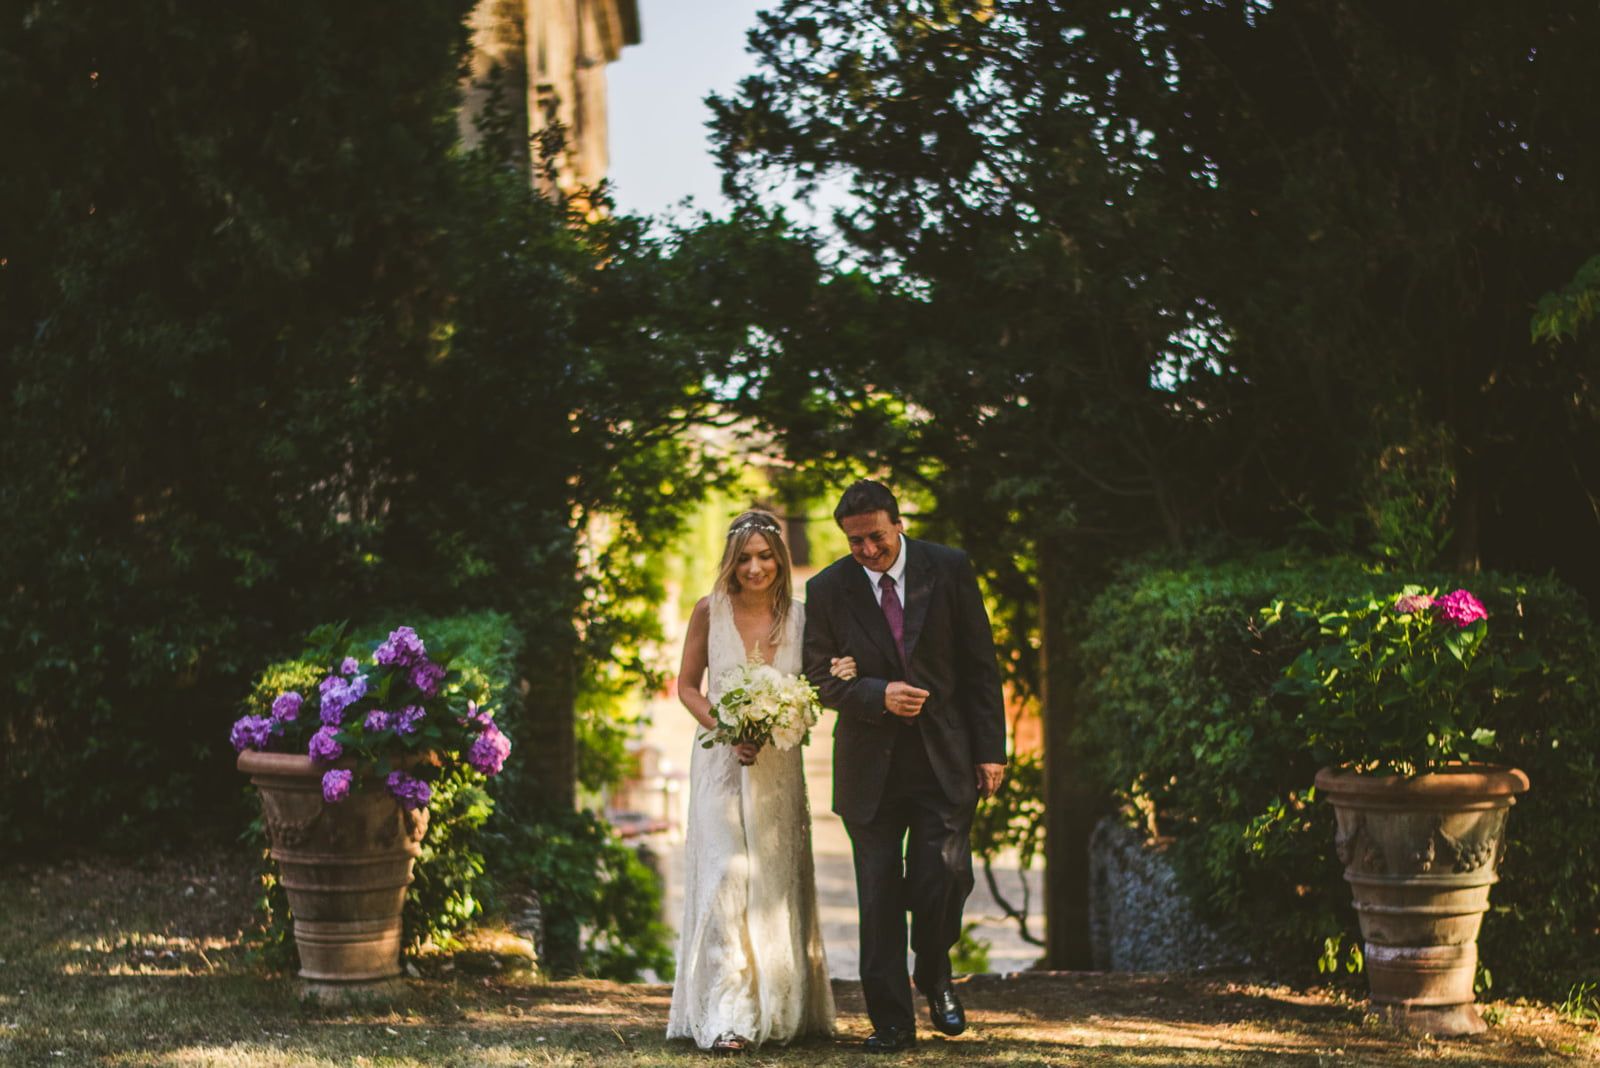 A+L Wedding at Montechiaro, Siena by Federico Pannacci 47